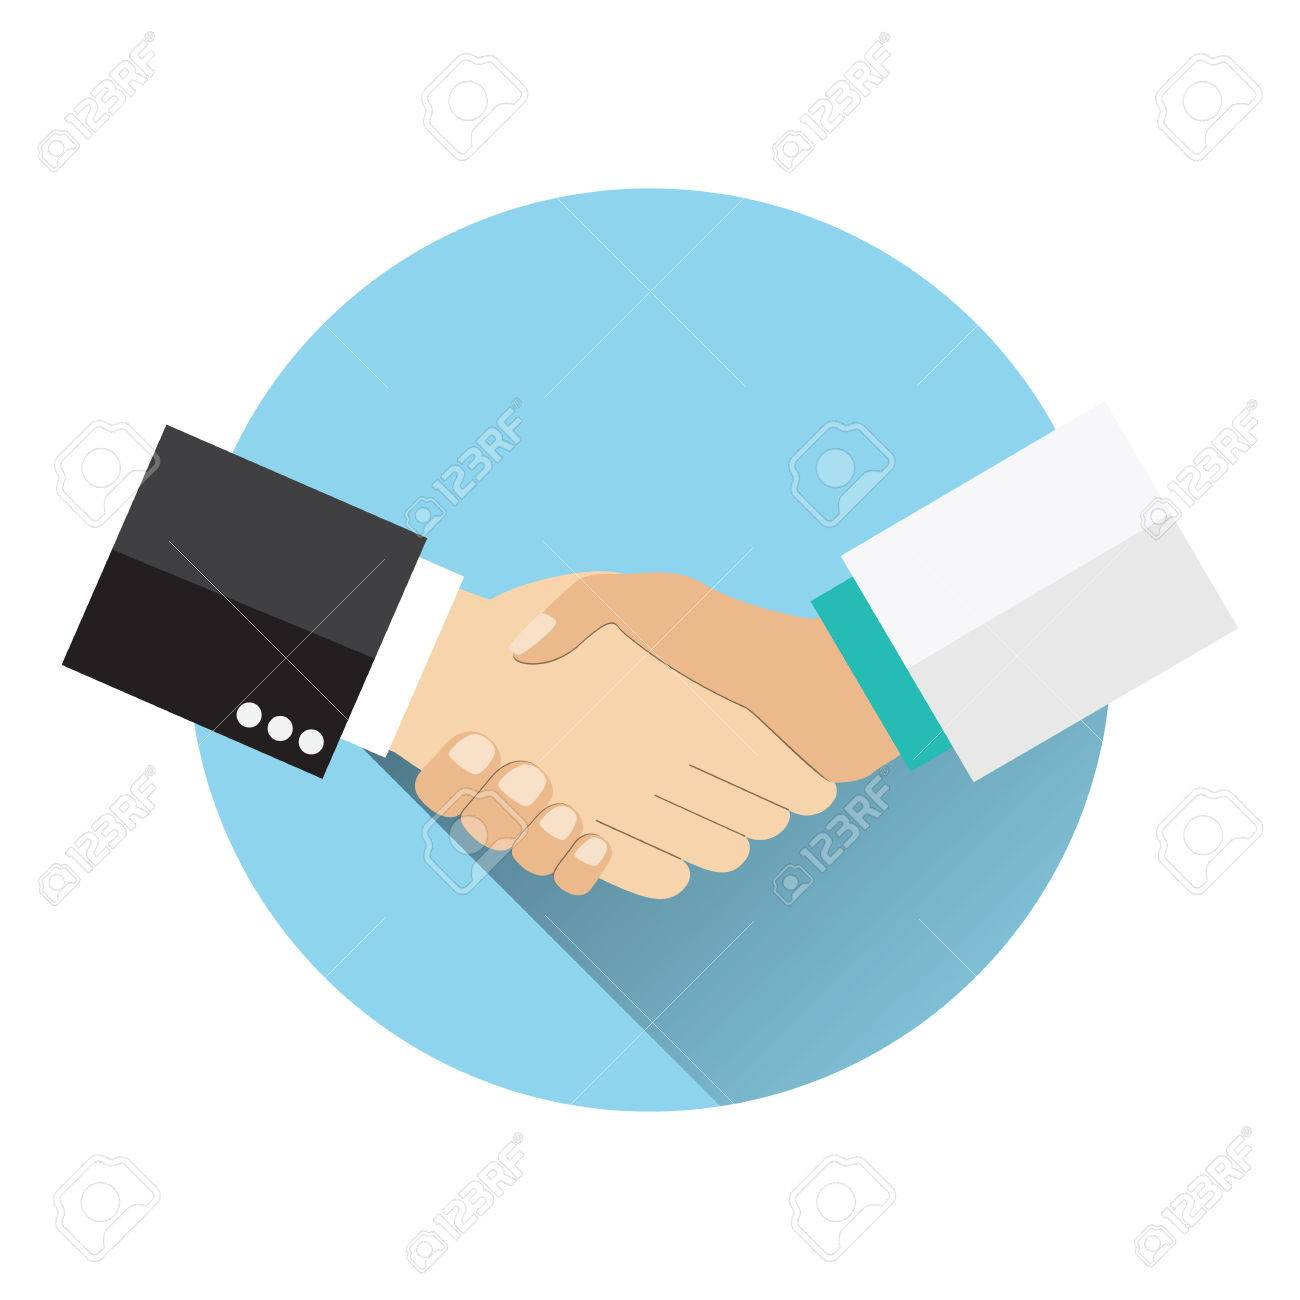 Handshake doctor and patient, Concept healthcare. Medical background. Doctor and patient shaking hands isolated on background. vector illustration in flat design - 57949867